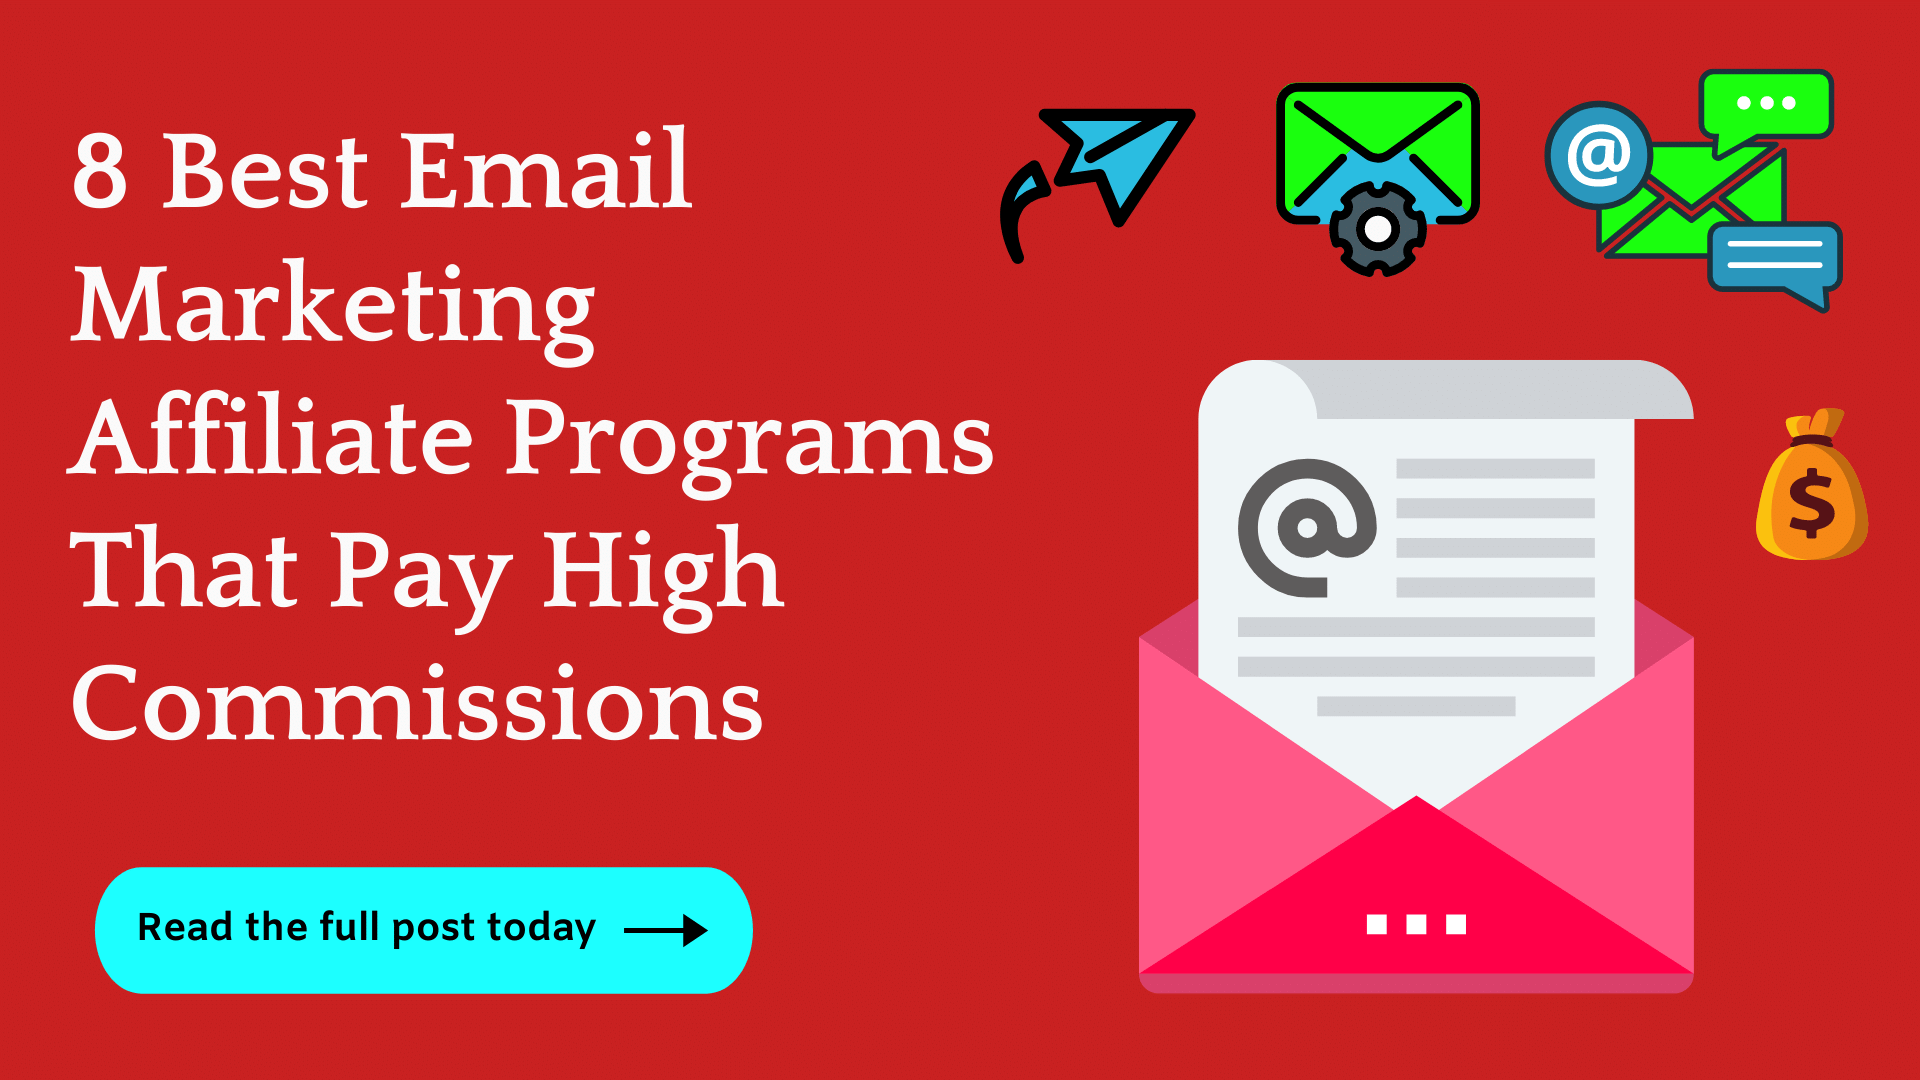 8 best email marketing affiliate programs